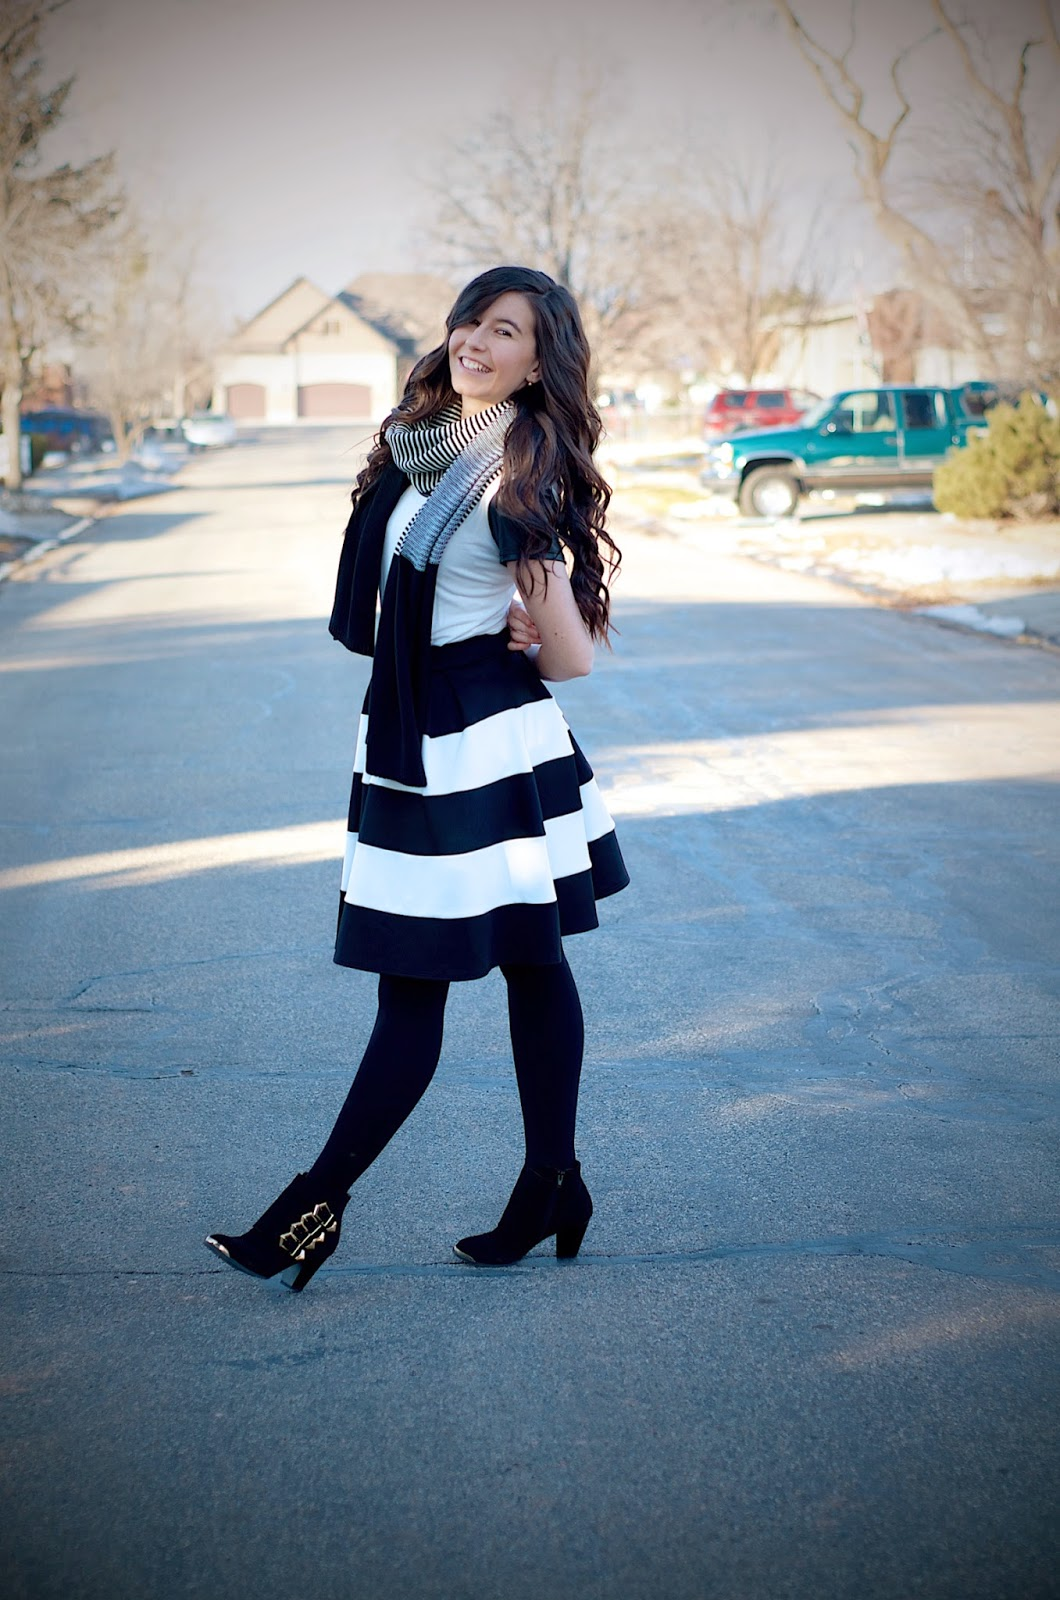 black and white outfit, persunmall, persun mall, scarf, black and white scarf, stripes, windsor store, windsor style, striped skirt, fit and flare, fit and flare skirt,